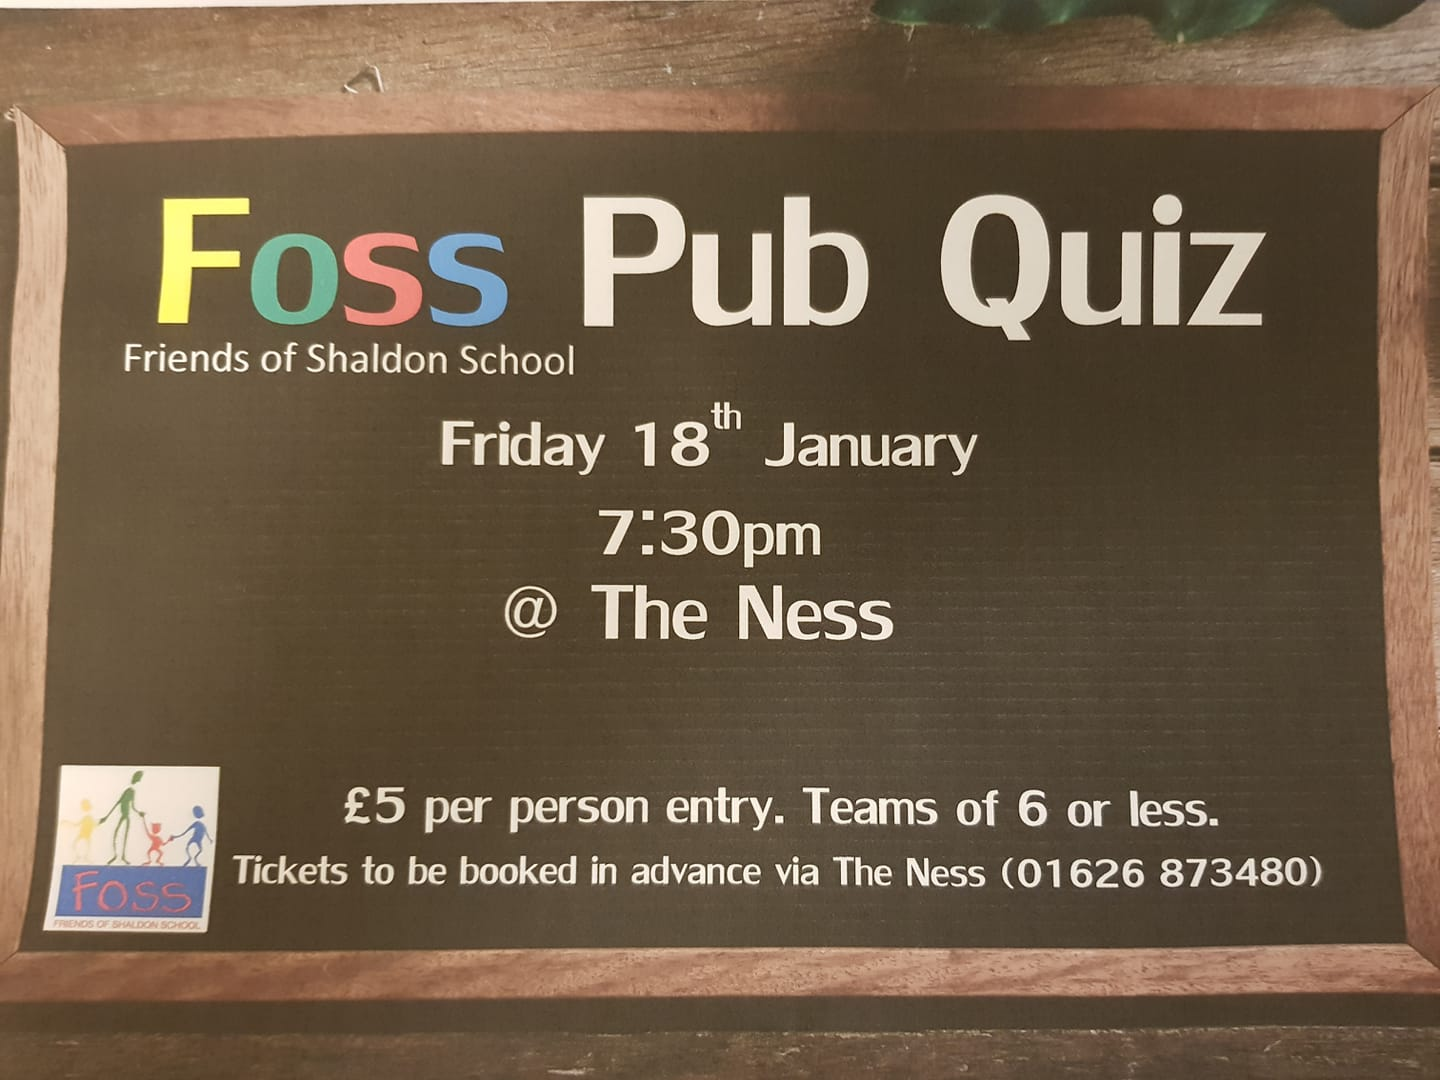 FOSS QUIZ at the Ness